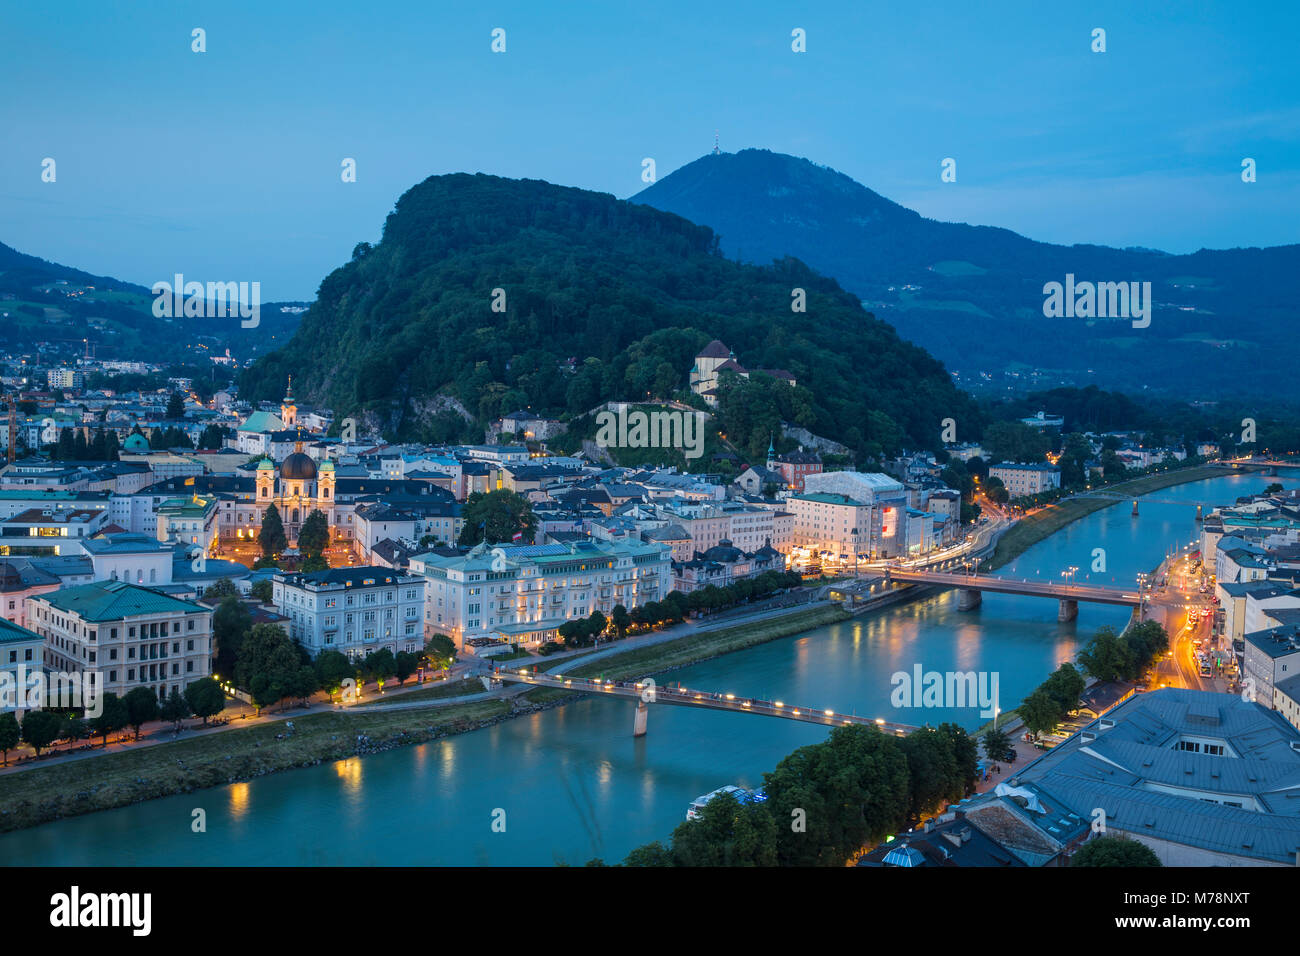 View of Salzach River with The Old City to the right and the New City to the left, Salzburg, Austria, Europe - Stock Image